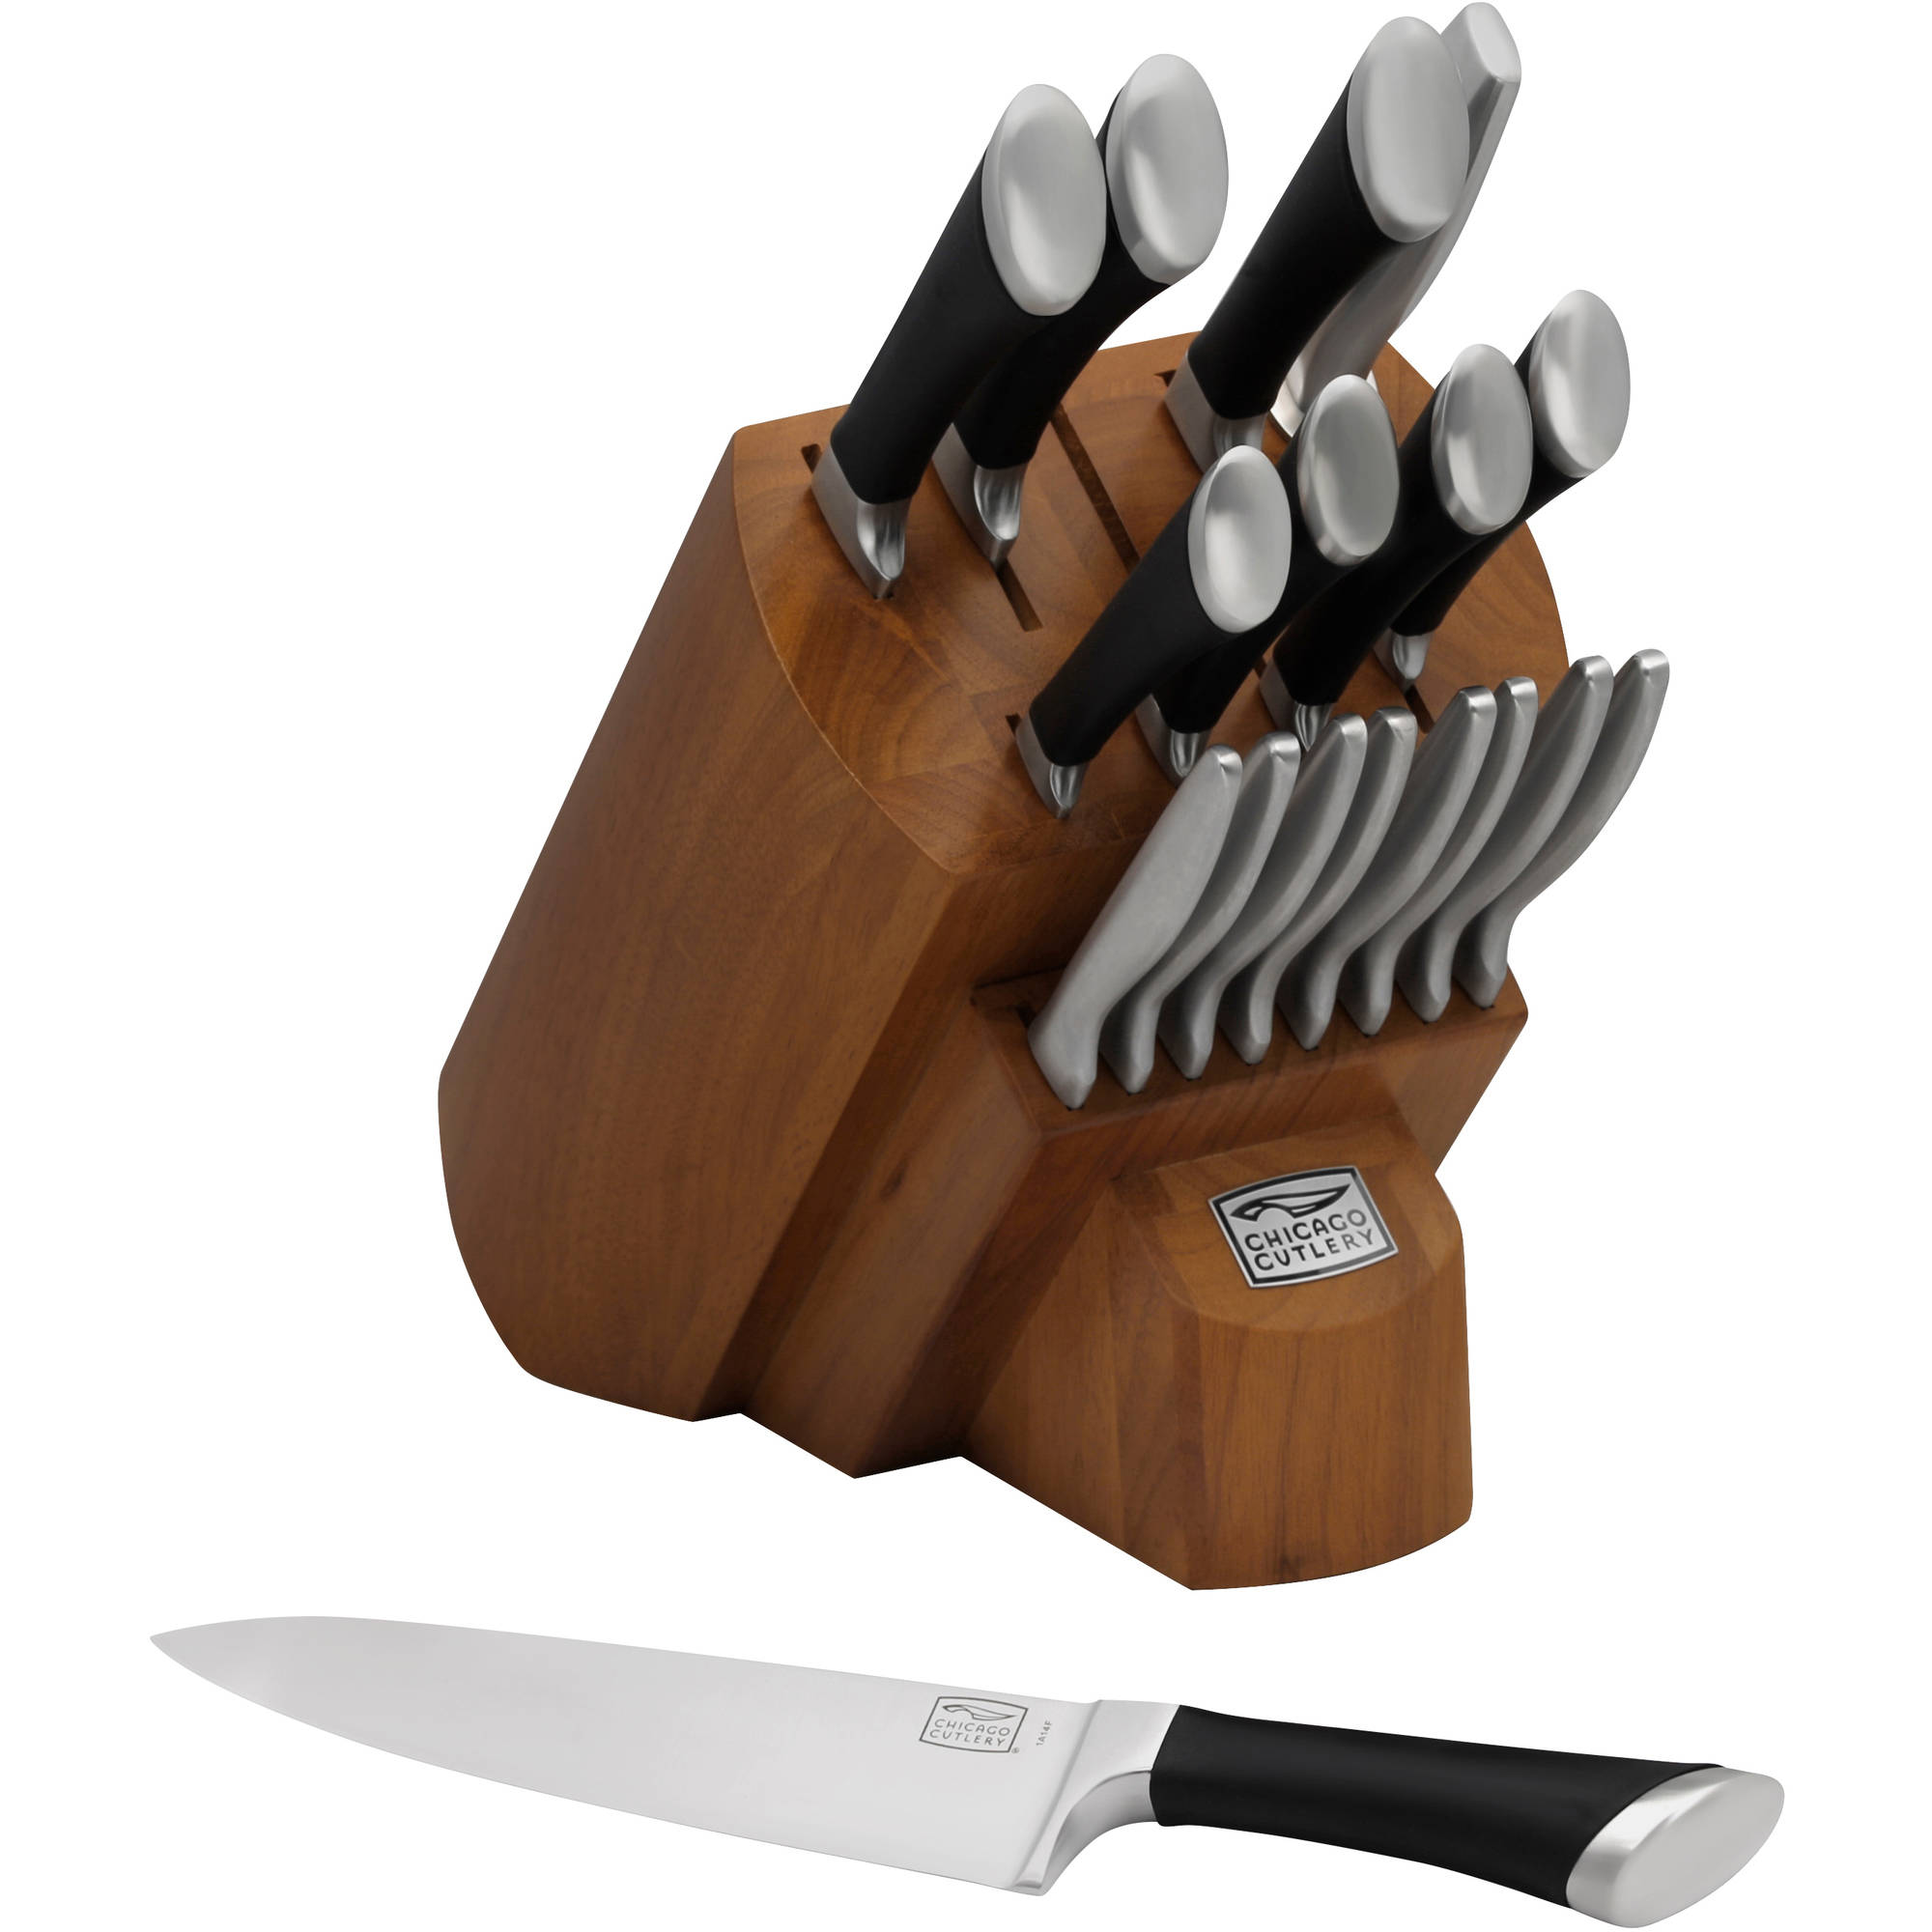 d3f4273c 4e6c 4736 82e9 5218e3a76f2c 1.8c467a326c525d975bcadfd4d2200a95 - Awesome Cutlery and More Chef Knives